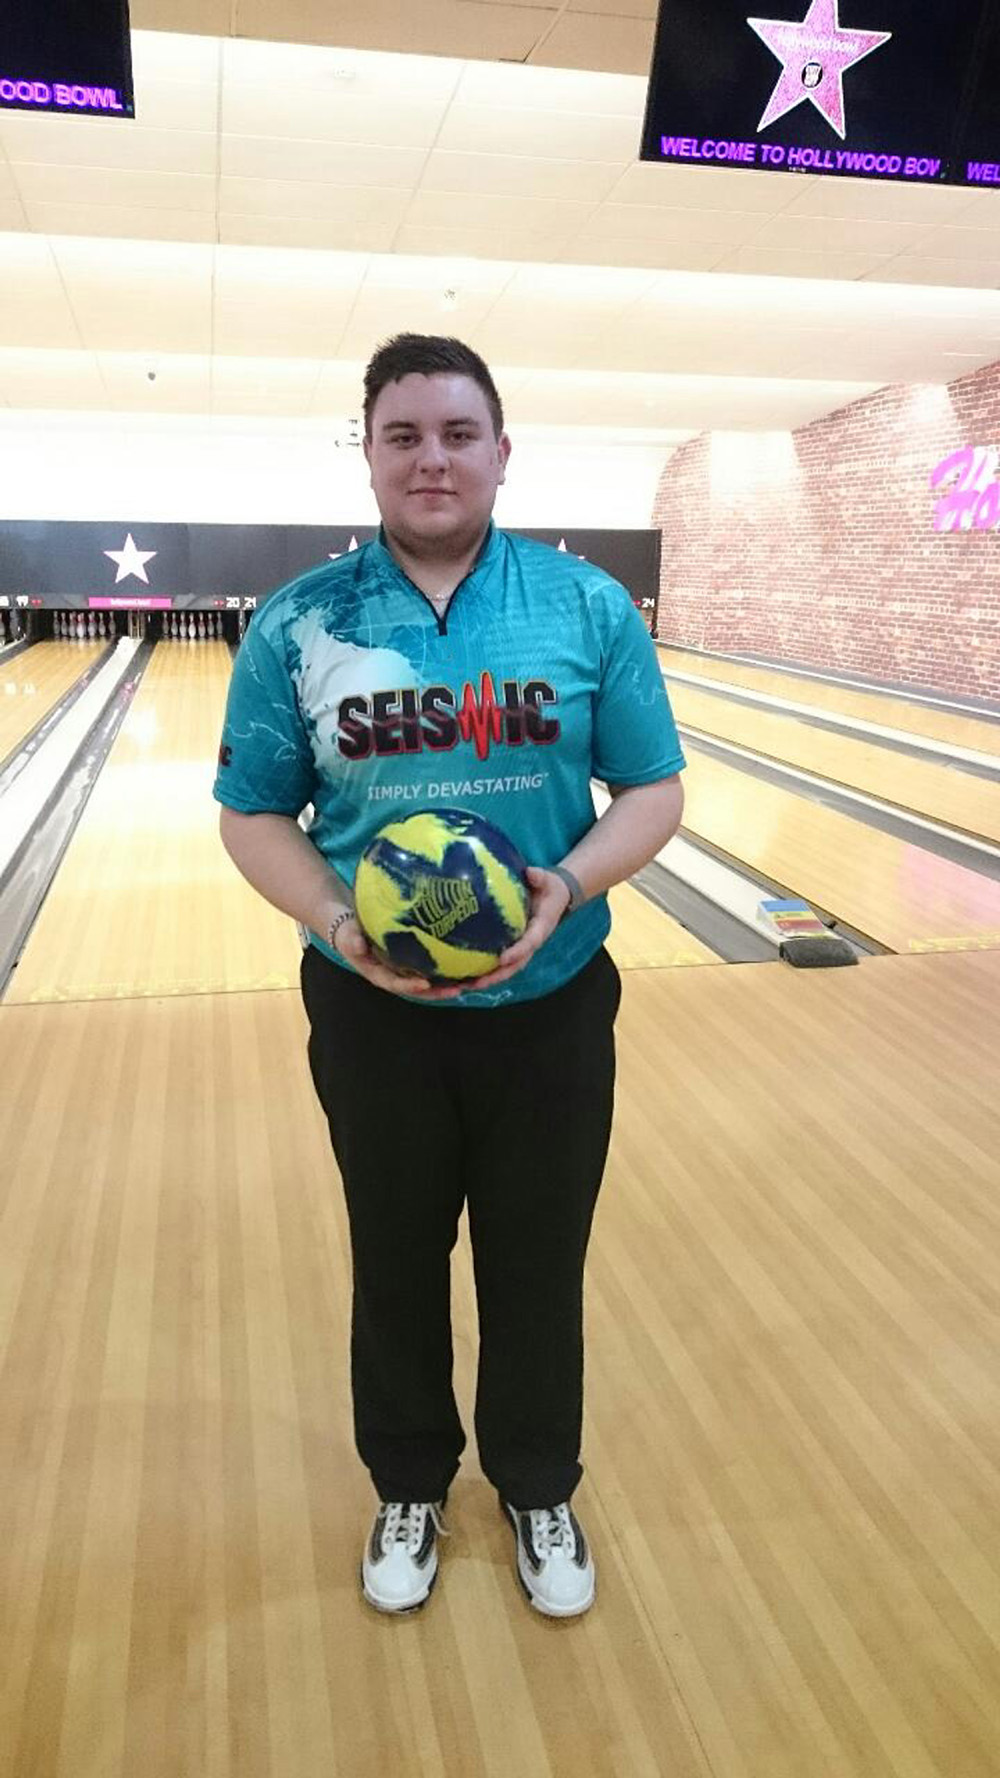 One of Scotland's top tenpin bowlers is trying to raise funds to get to the World Championships in Doha